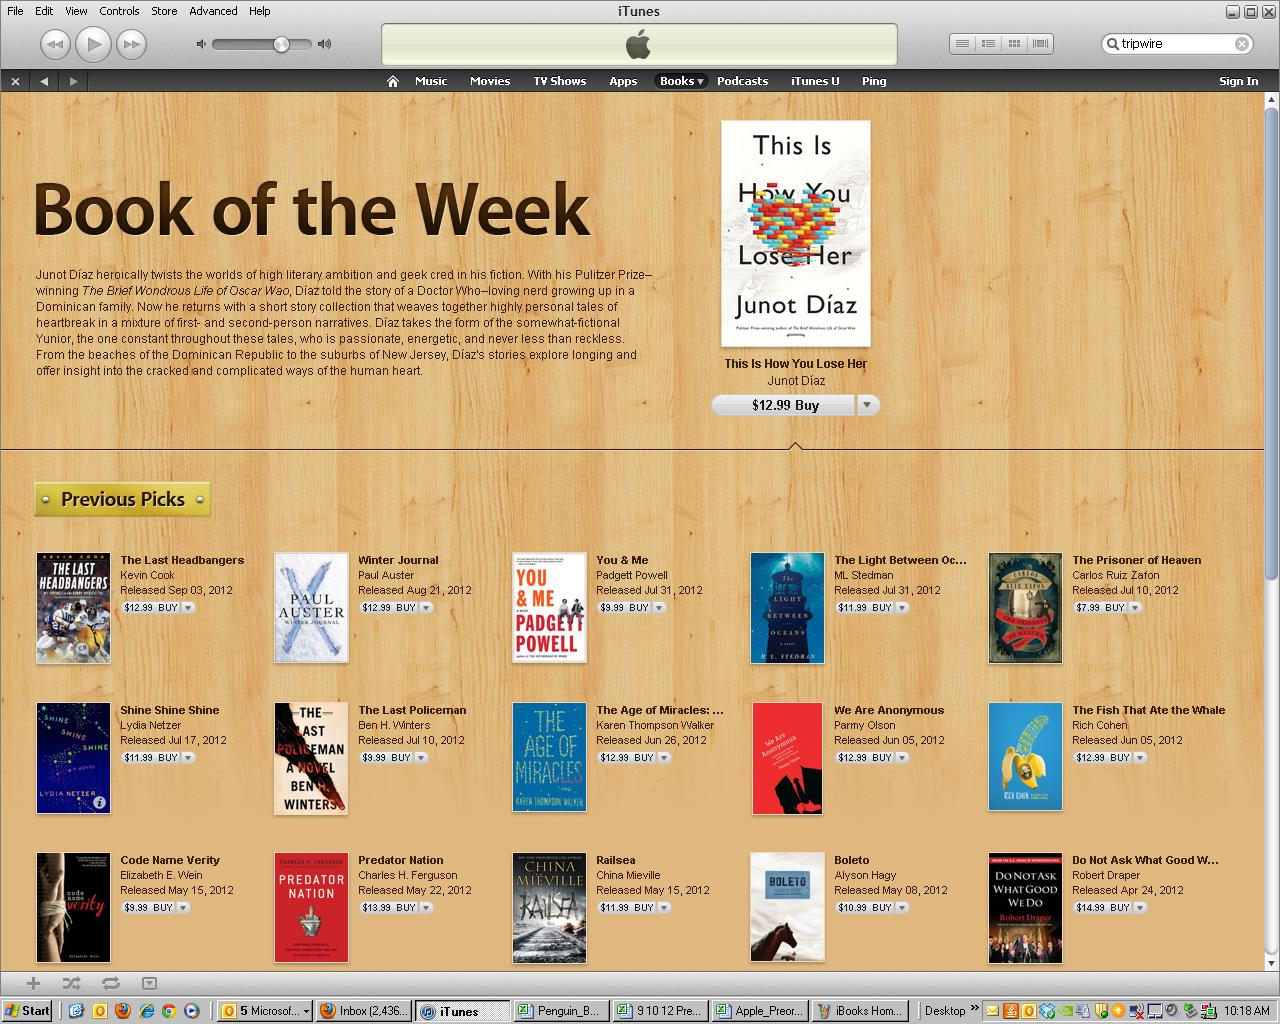 TOP BOOKS THIS WEEK ITUNES